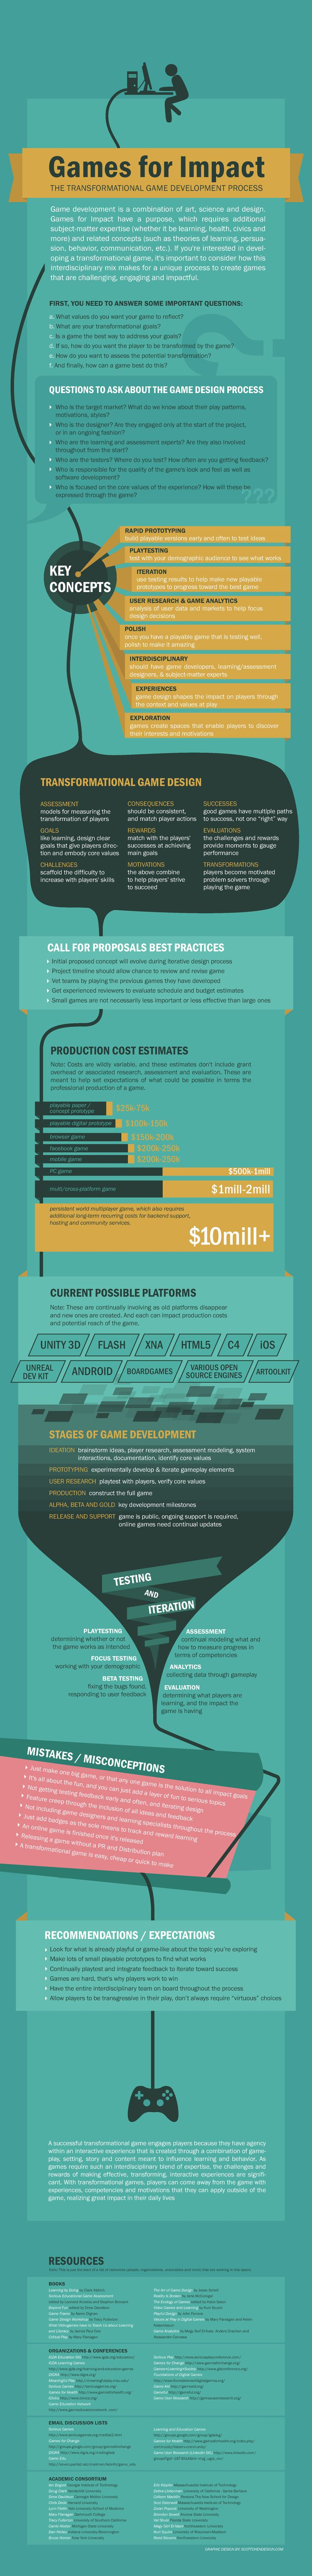 Games for Impact: The transformational game development process #gaming #gbl(Step Team Ideas)